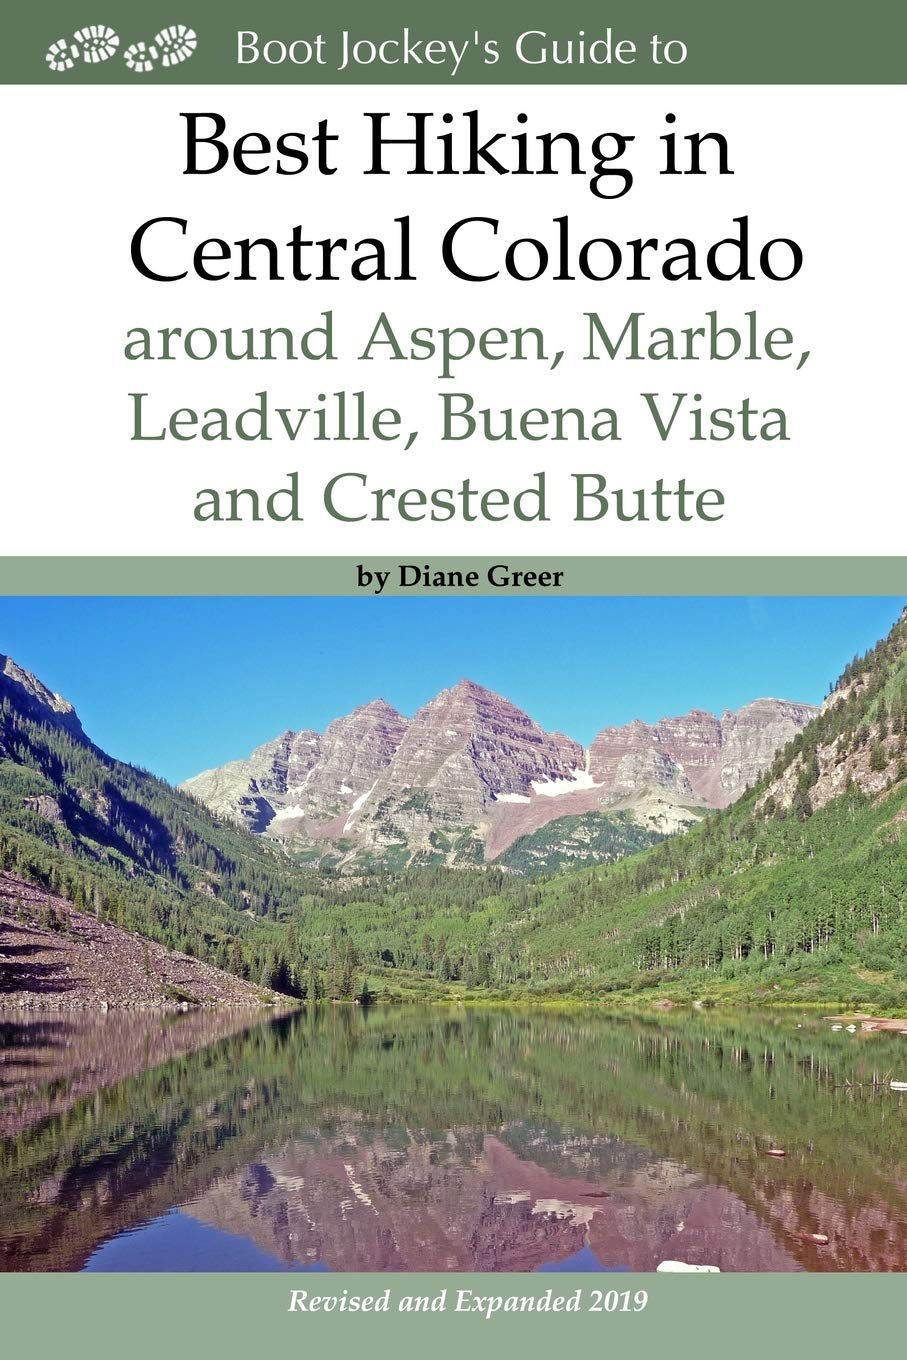 Leadville Buena Vista and Crested Butte Best Hiking in Central Colorado around Aspen Marble